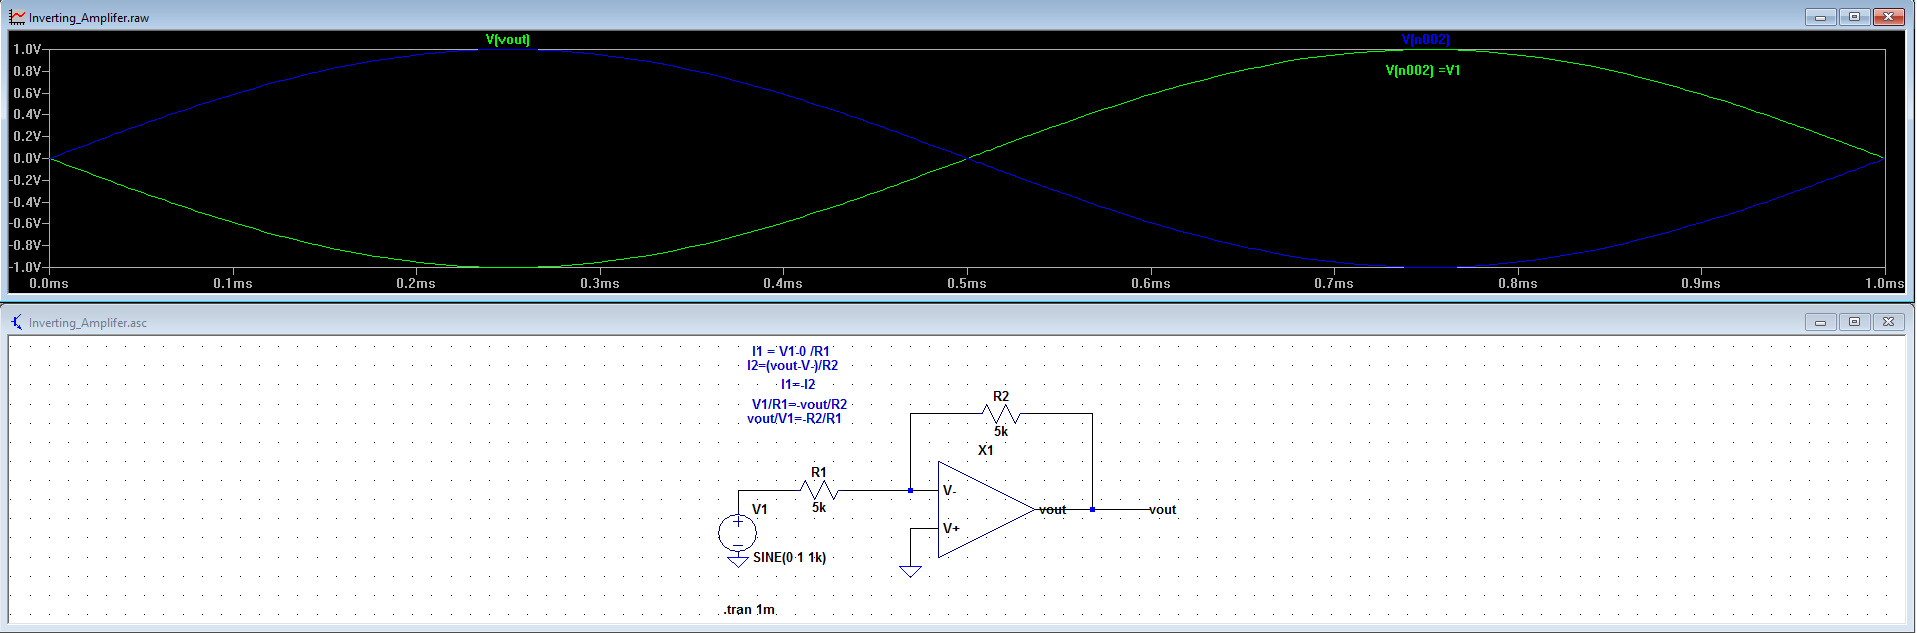 Peachy Introduction To Operational Amplifiers With Ltspice Learn Sparkfun Com Wiring Cloud Picalendutblikvittorg